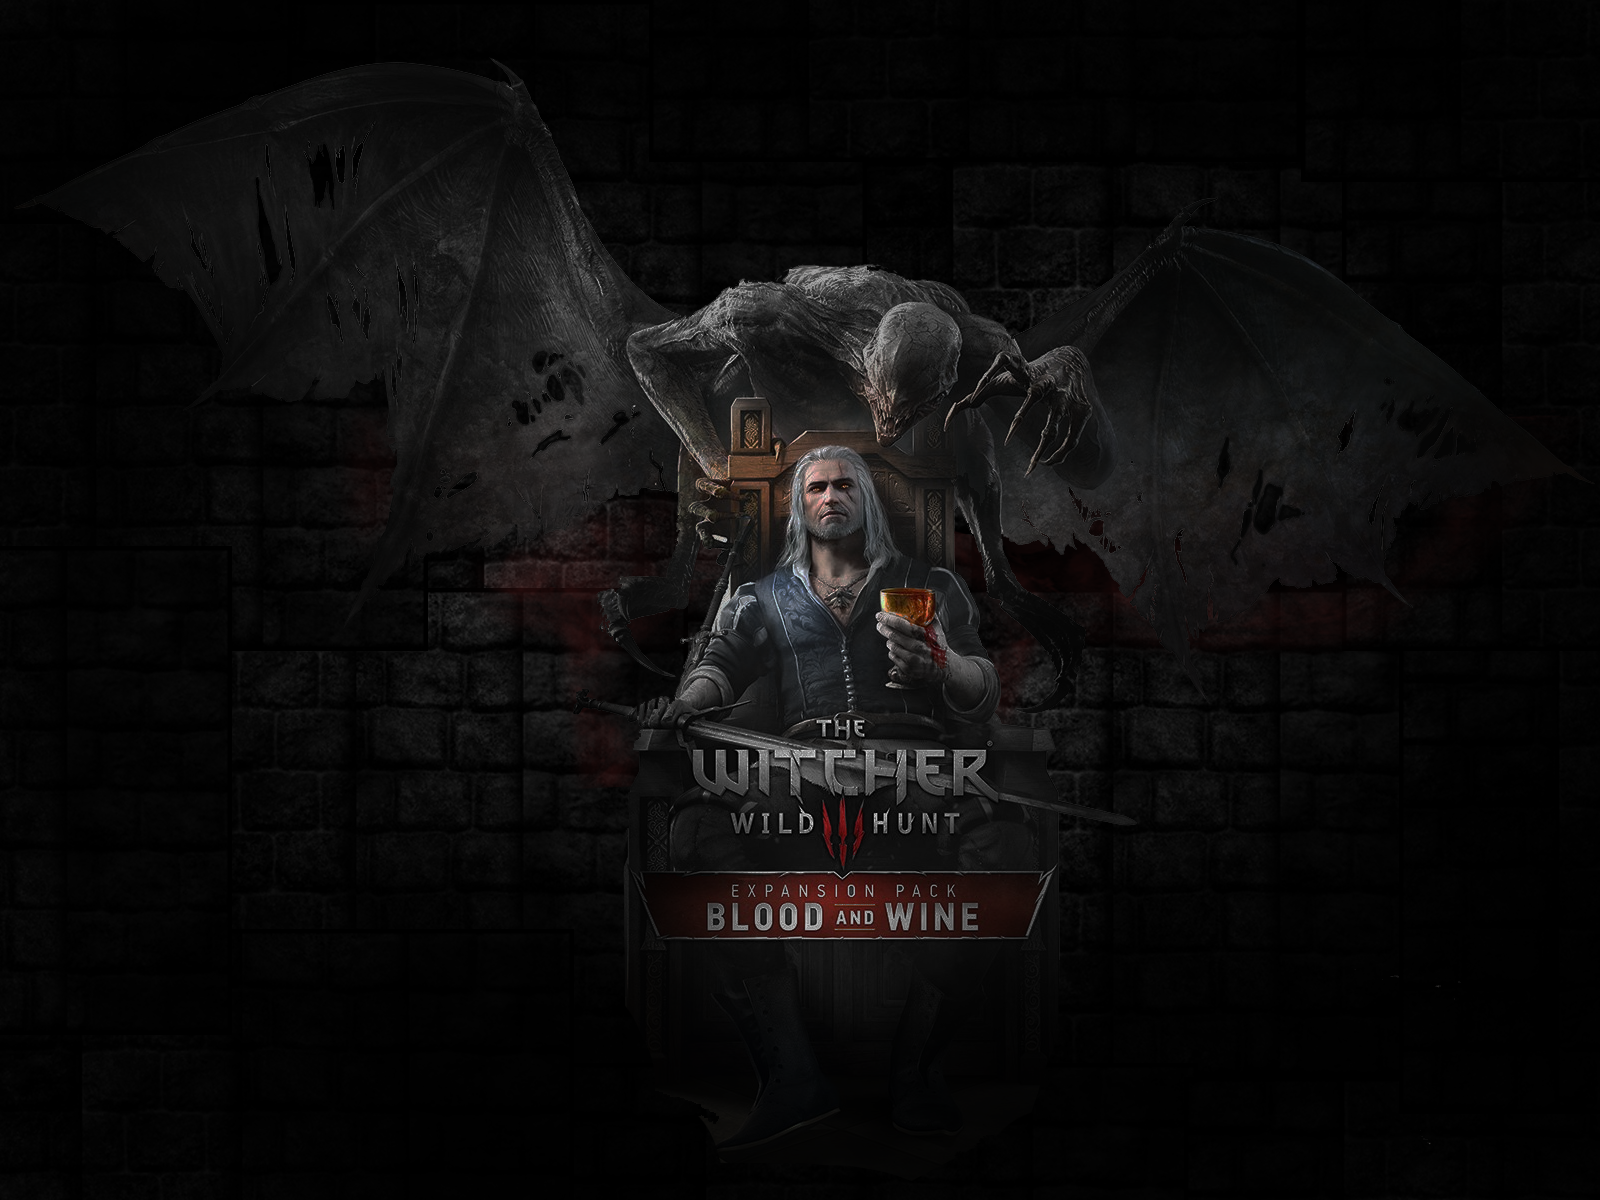 Witcher 3 Blood And Wine Wallpaper 1600x1200 By Sk1pter On Deviantart